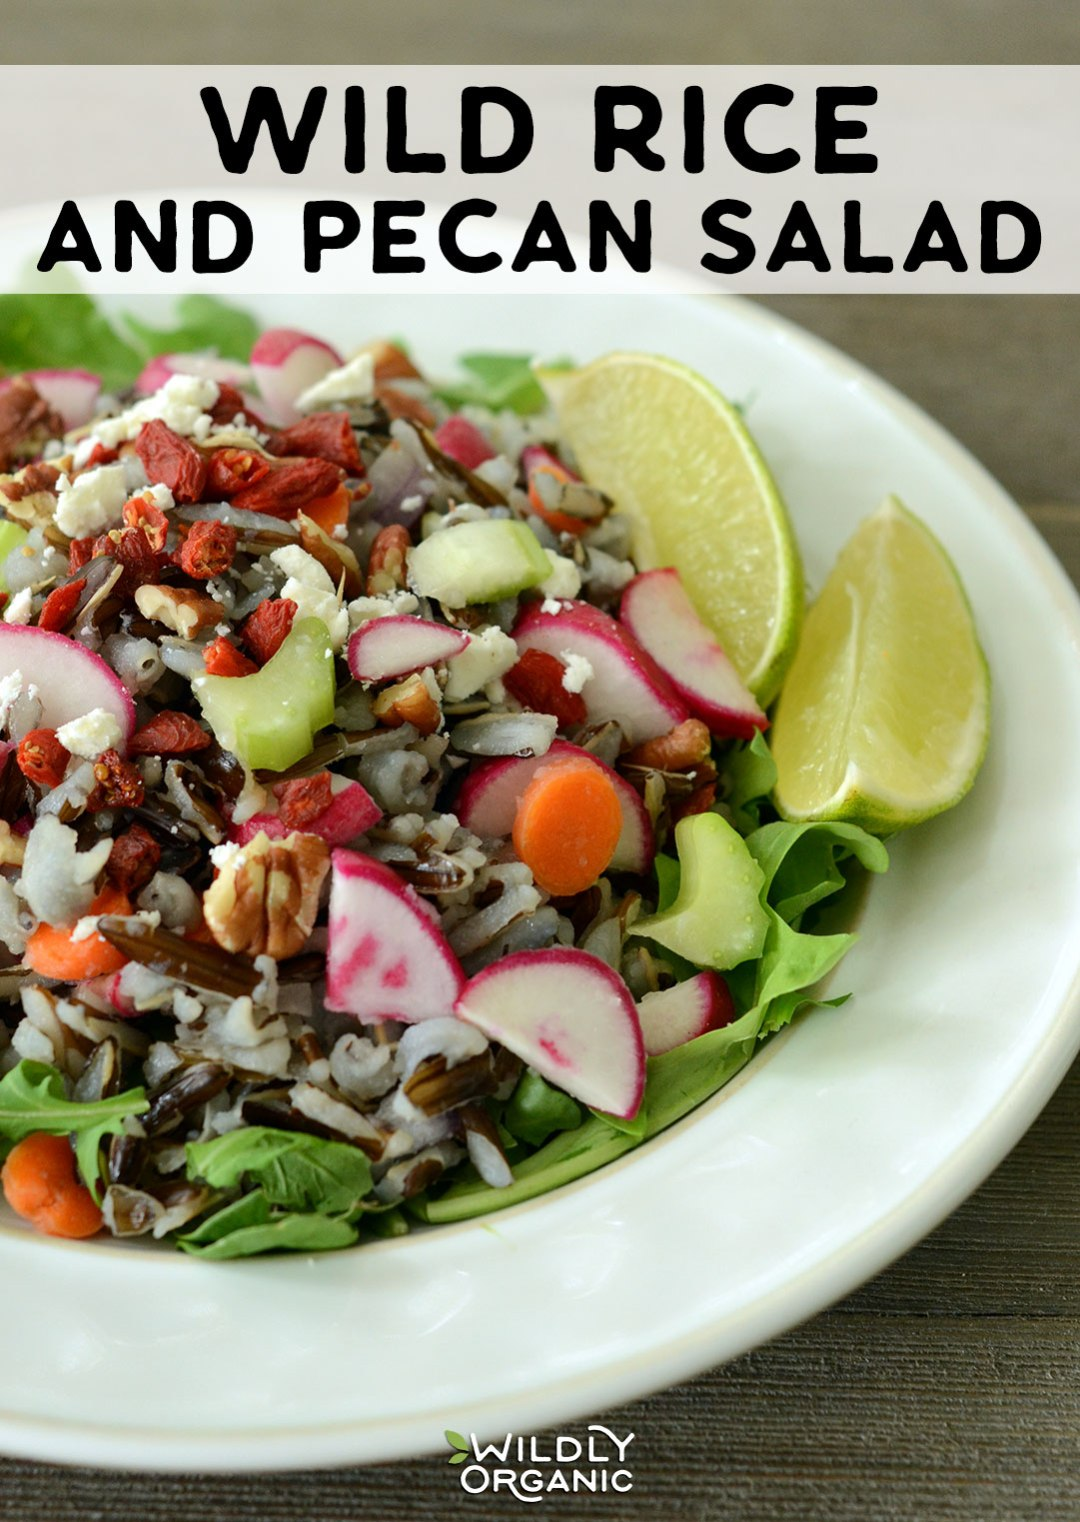 Wild Rice and Pecan Salad | This wild rice and pecan salad is a perfect side dish, but can also become a main by topping with protein such as roast beef or cooked chicken or turkey. Bring this dish to a potluck or even make it ahead for easy weeknight dinners! This is gluten free, vegetarian, real food. #glutenfree #sidedish #vegetarianrecipes #vegetarian #realfood #allergyfriendly